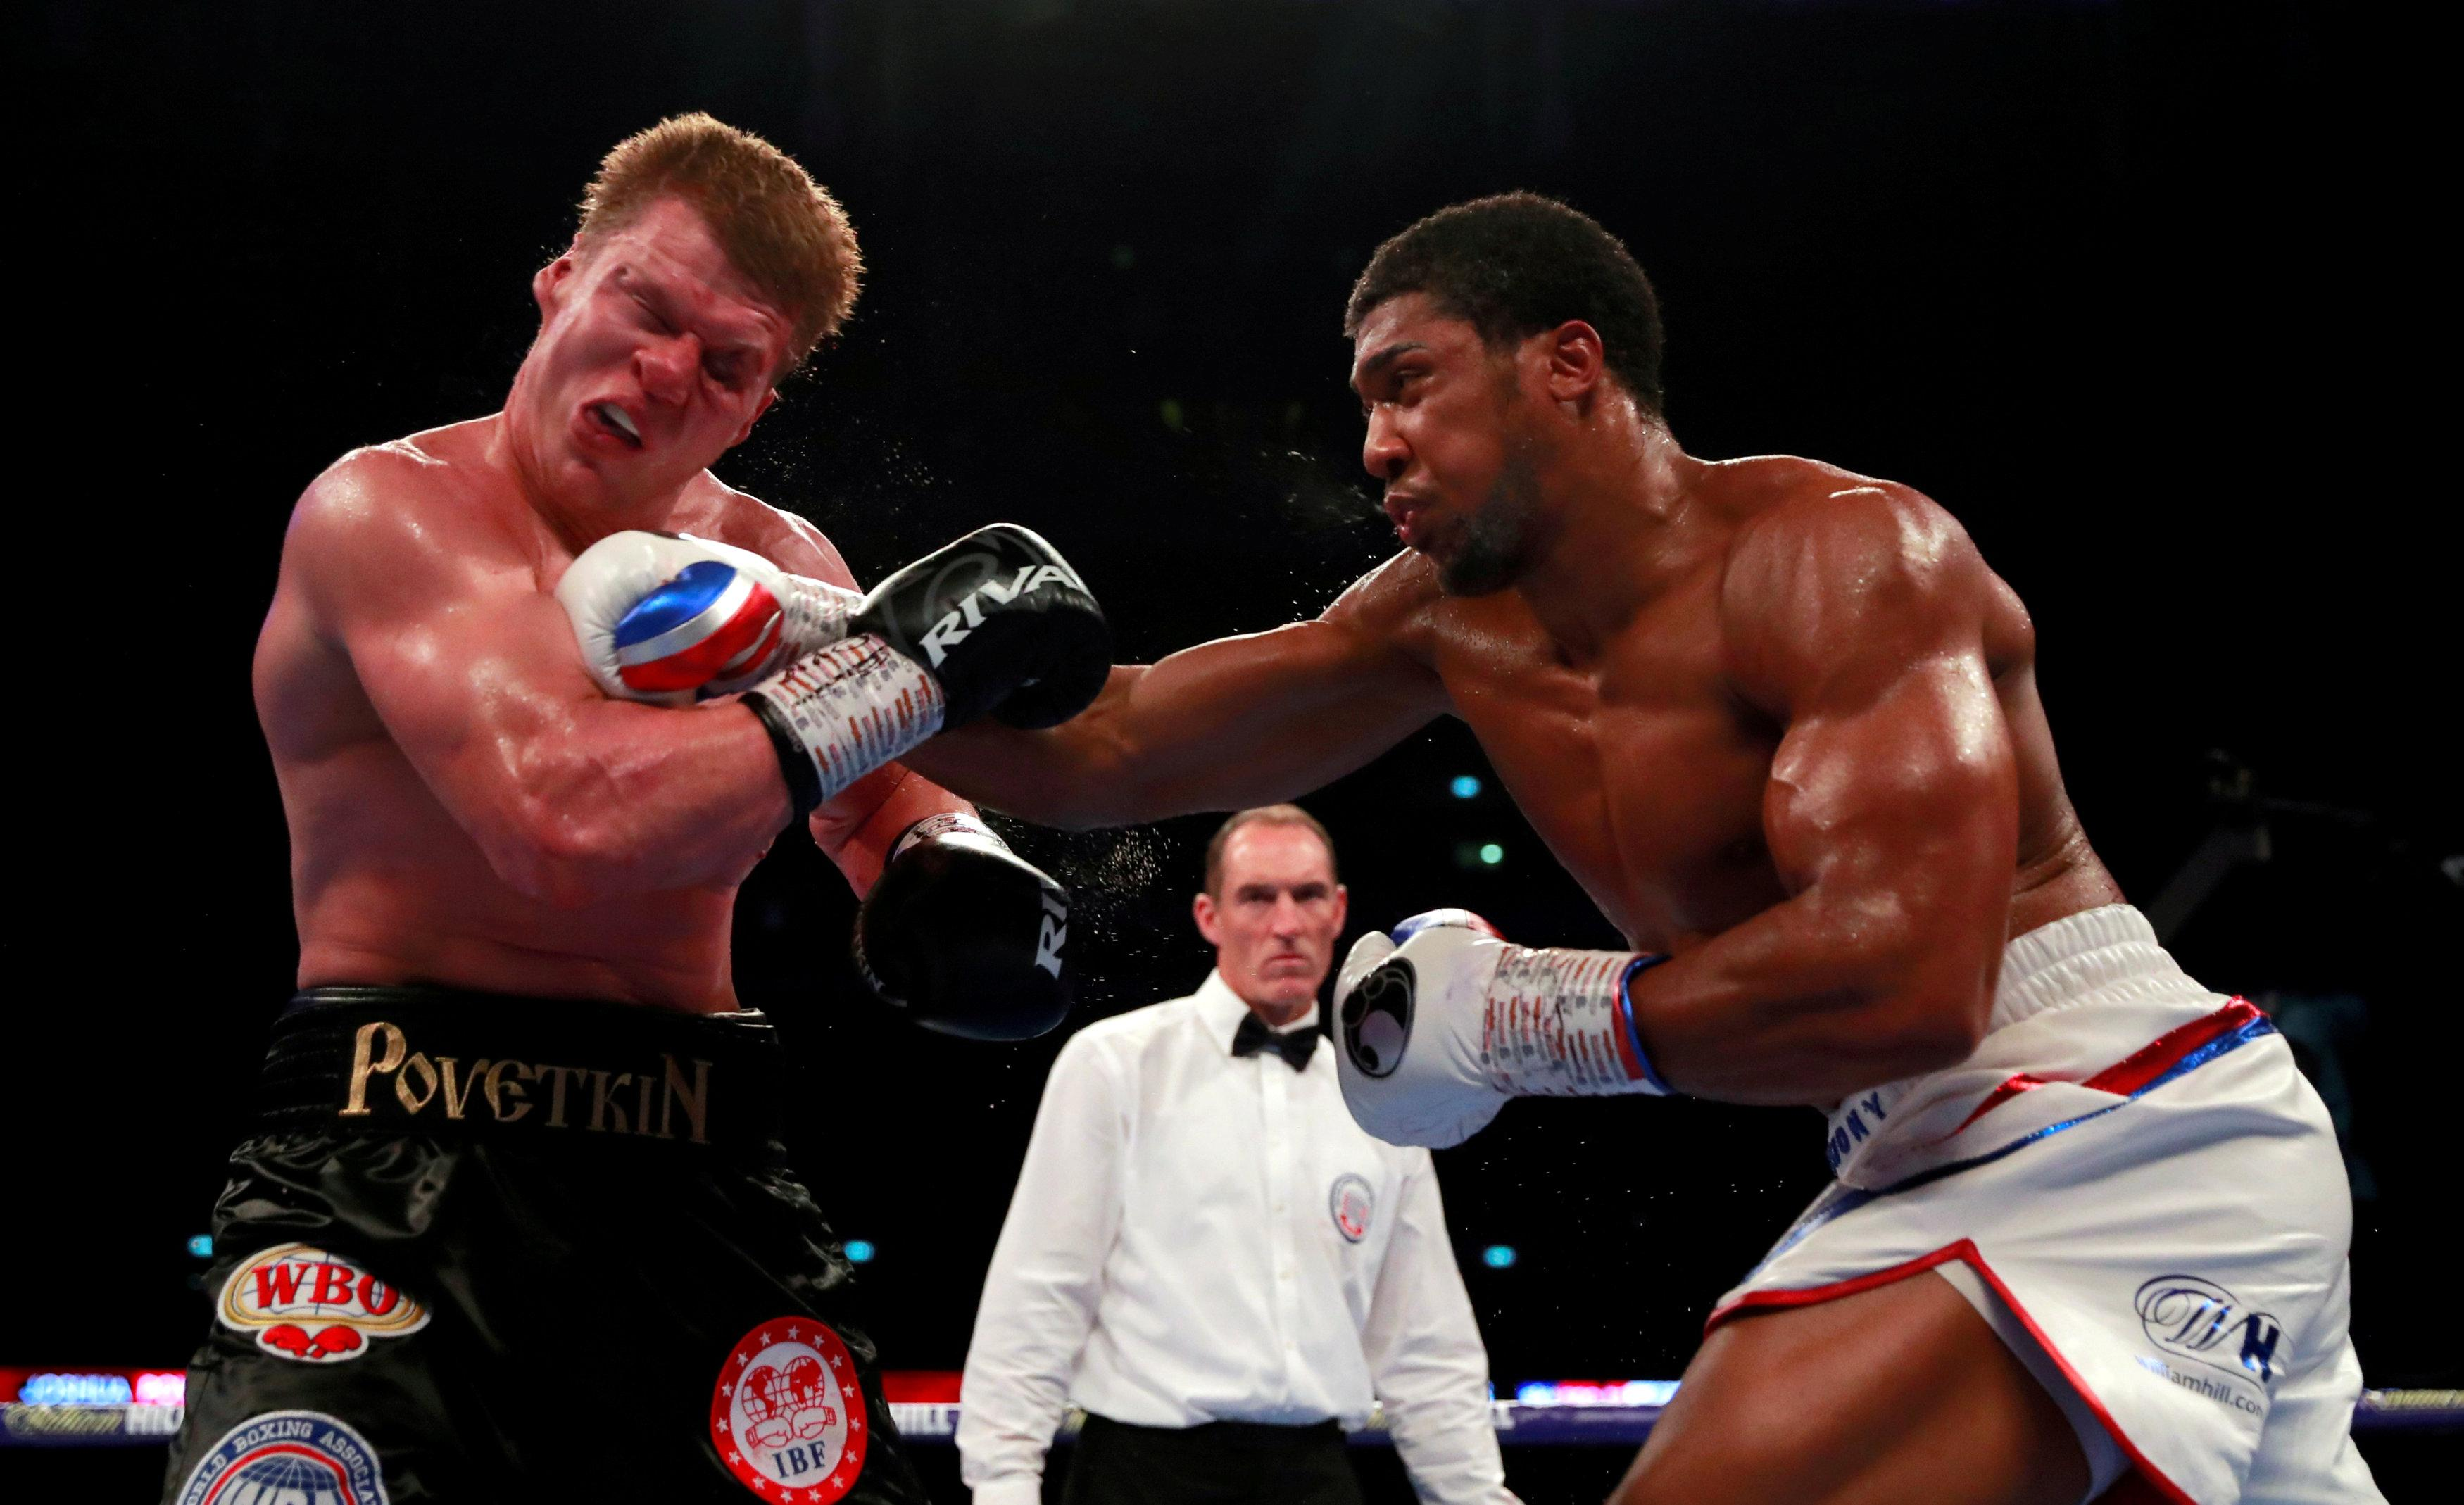 Joshua knocked out Povetkin at Wembley in the seventh round of their thrilling encounter